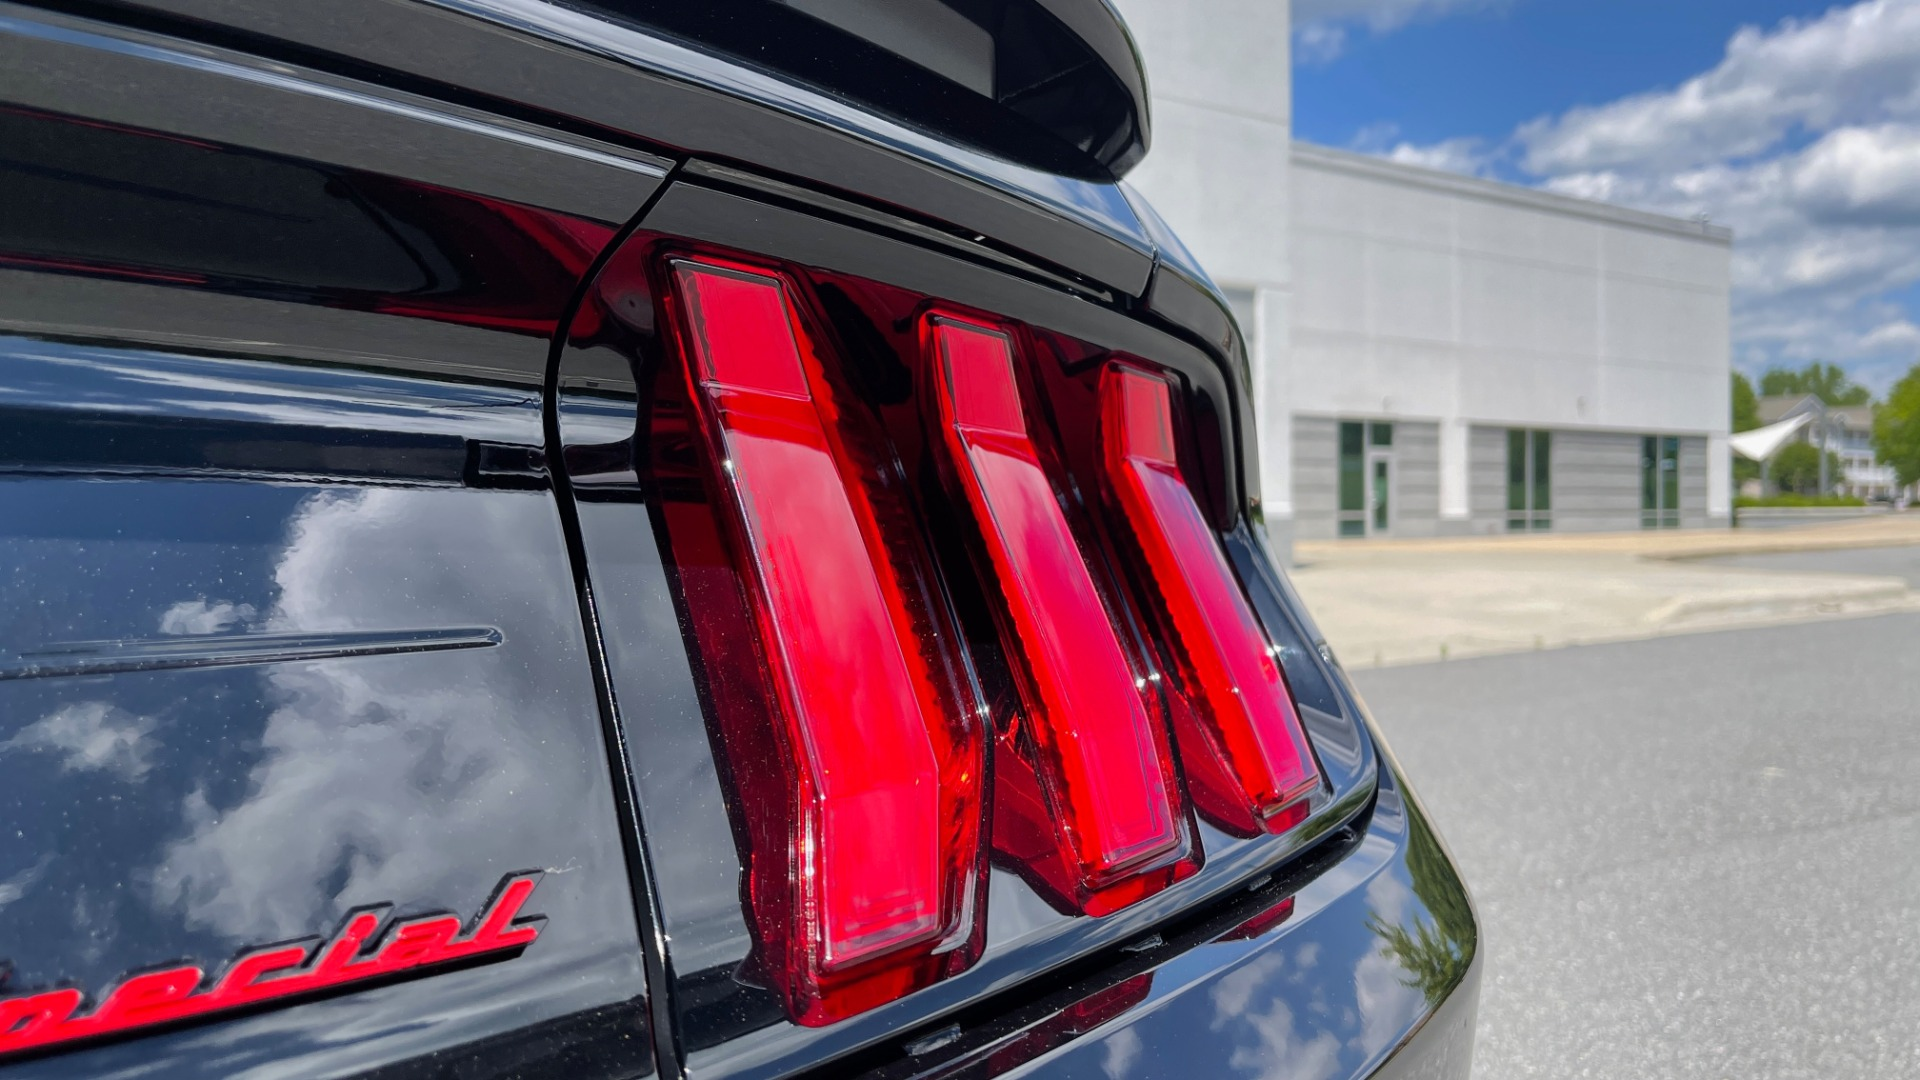 Used 2020 Ford MUSTANG GT PREMIUM / CALIFORNIA SPECIAL / 5.0L V8 / 6-SPD MAN for sale Sold at Formula Imports in Charlotte NC 28227 29